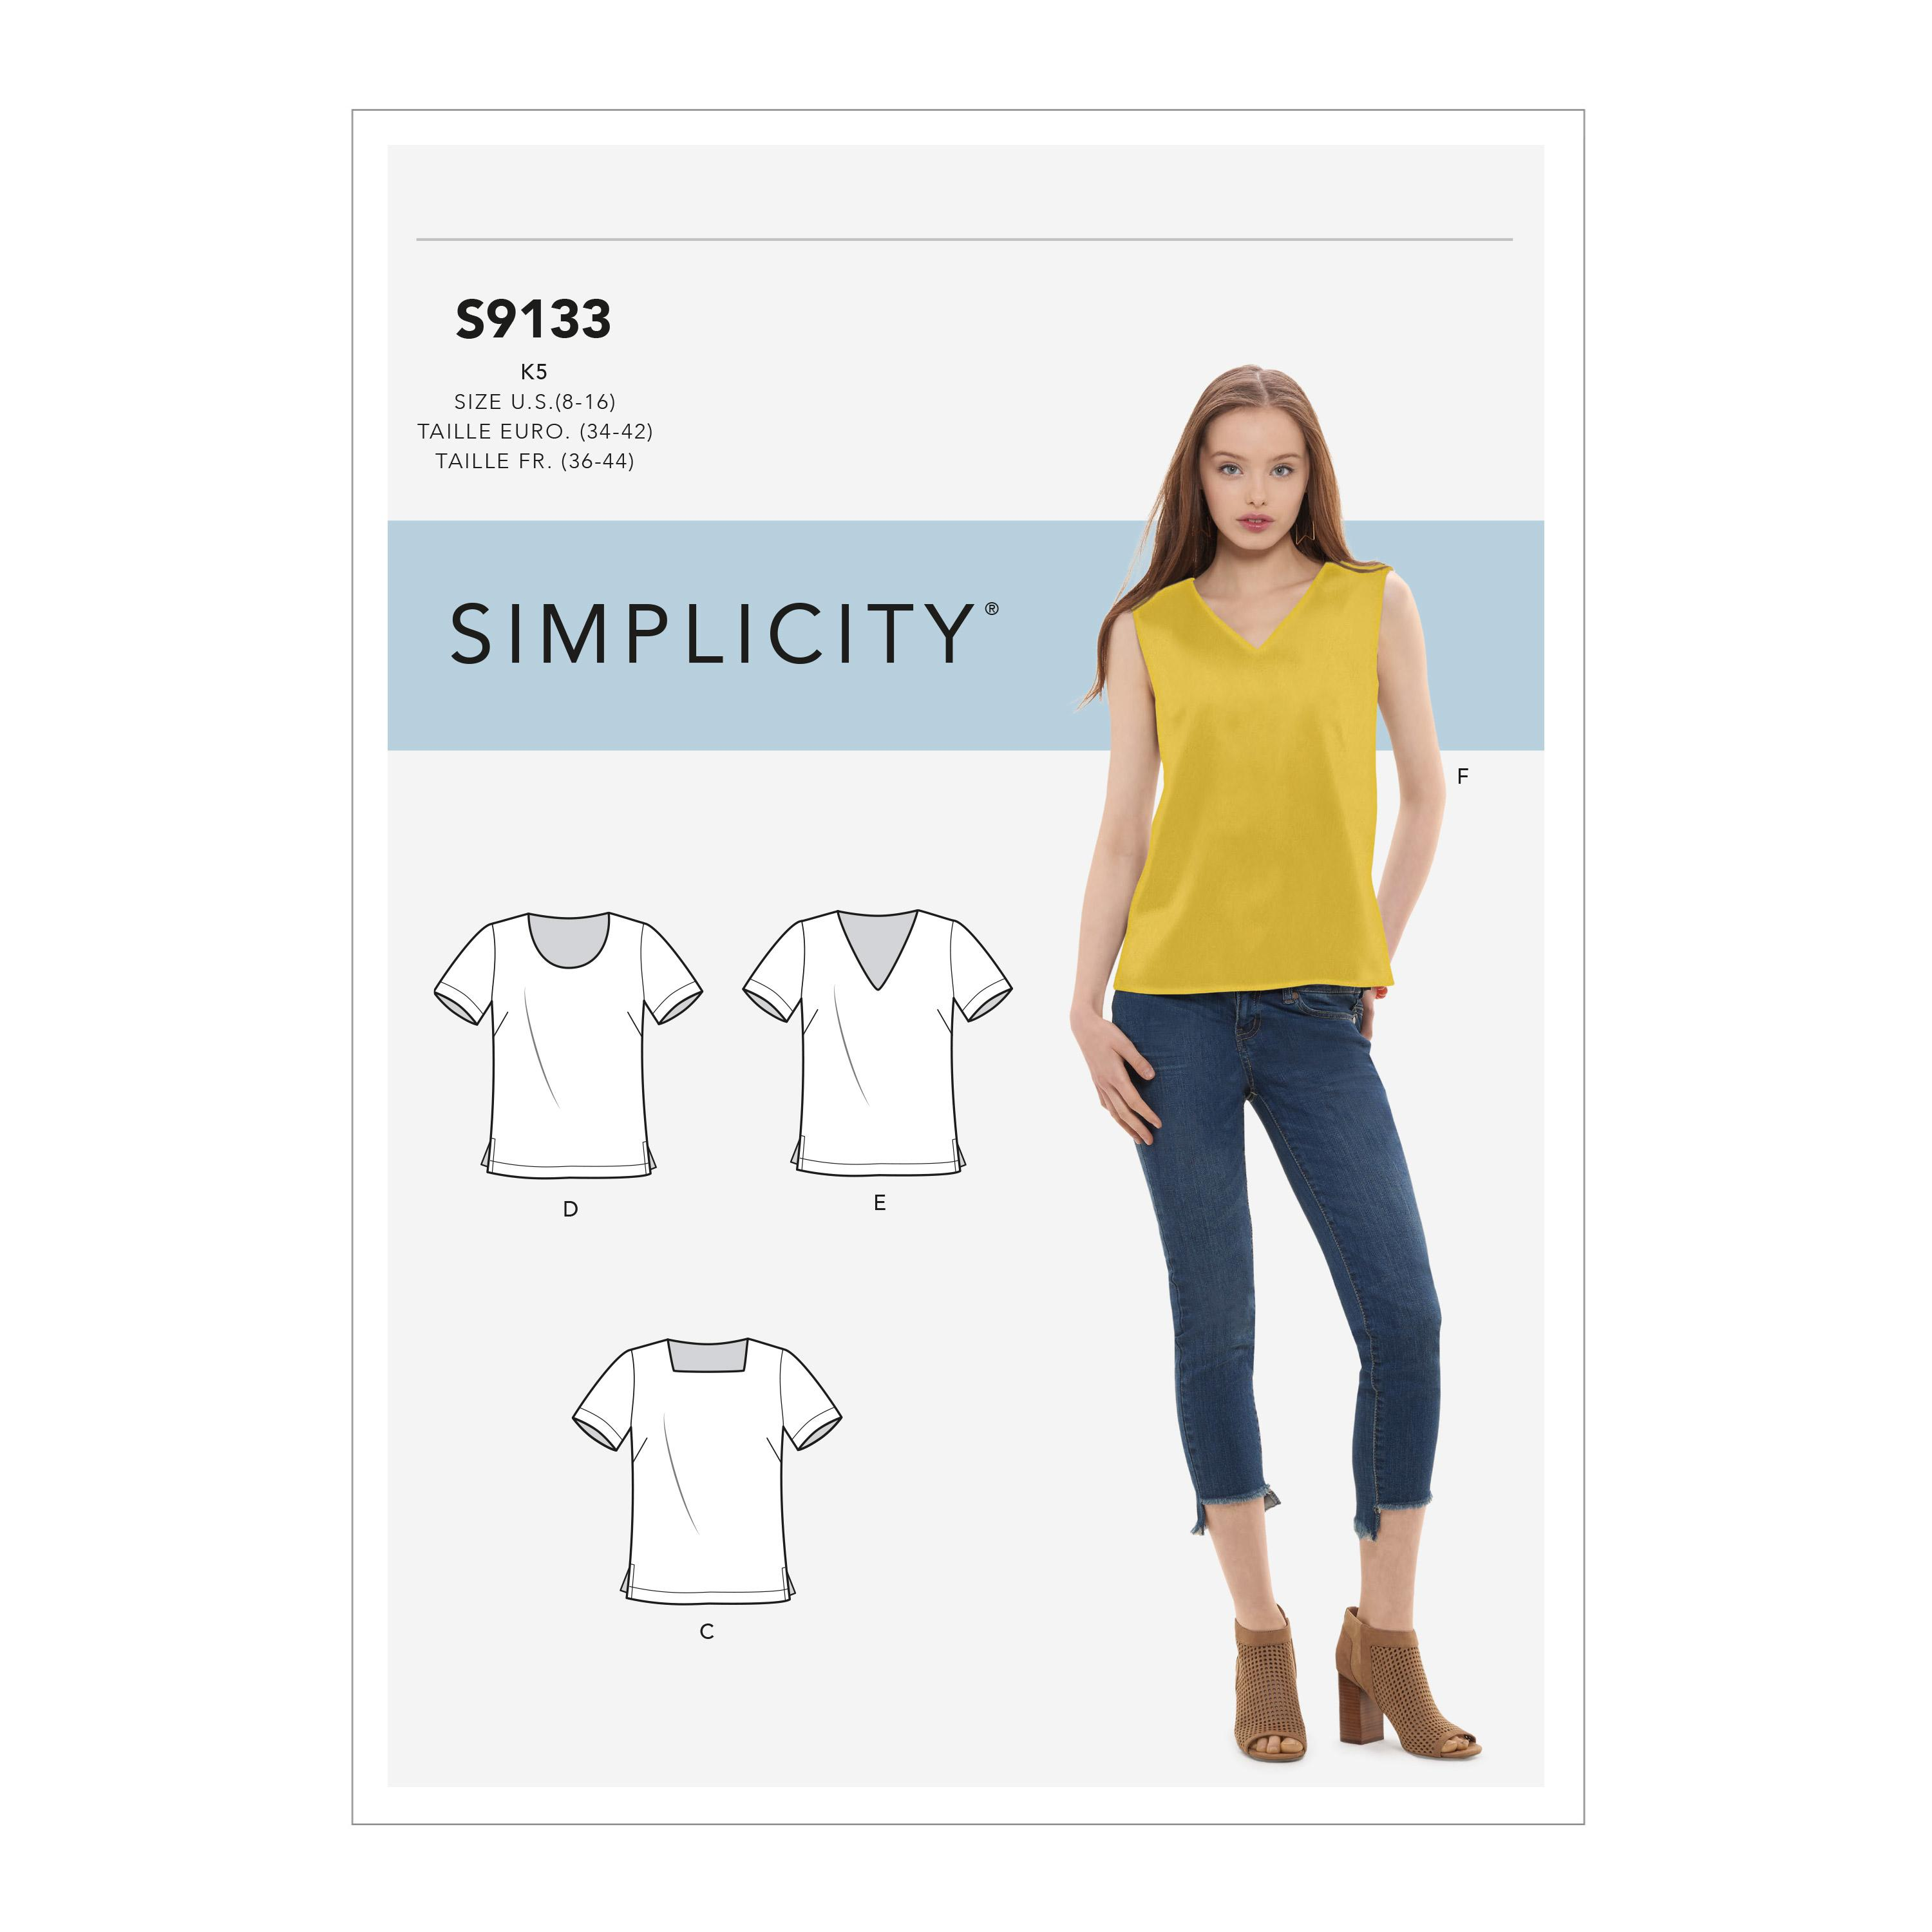 Simplicity S9133 Misses' Tops